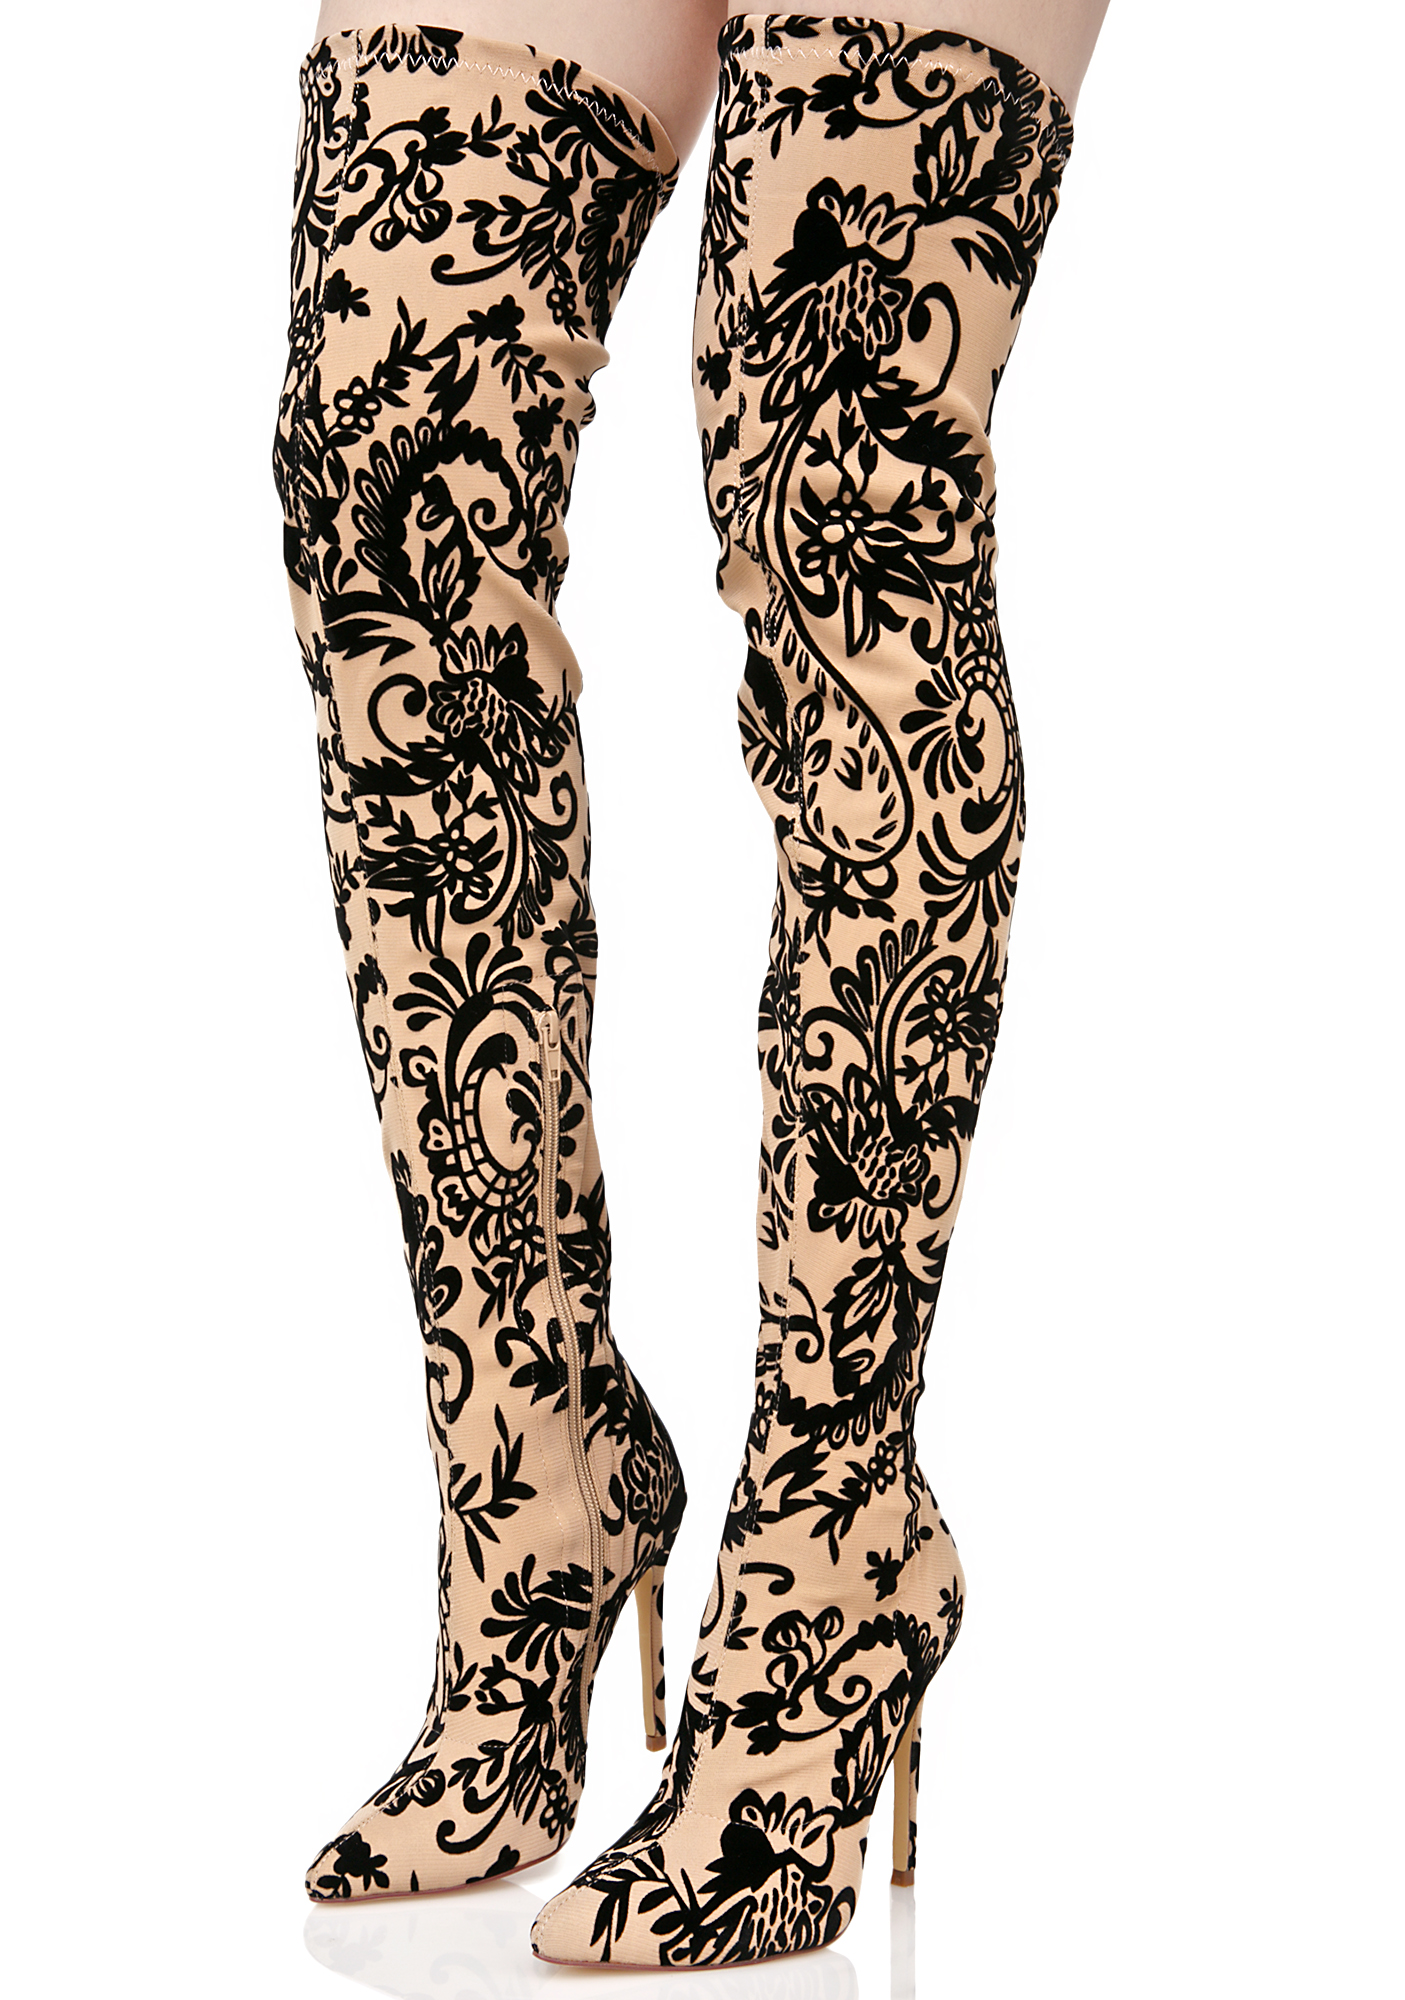 Ornate Velvet Nude Thigh High Boots